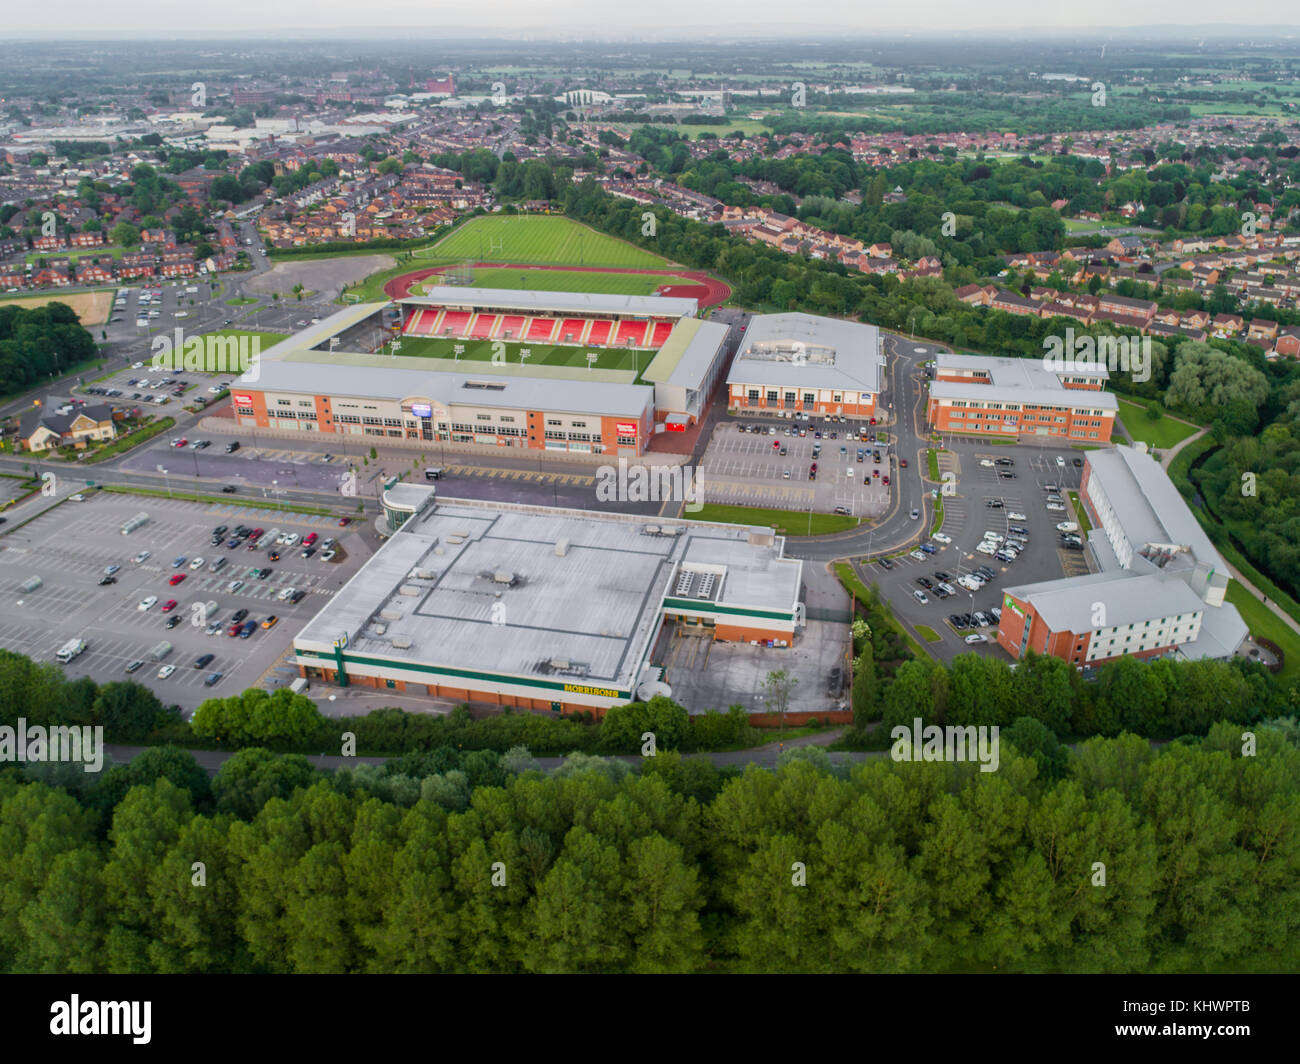 Leigh Sports Village With Morrisons Supermarket And Holiday Inn Express in Leigh, Greater Manchester, England, UK - Stock Image